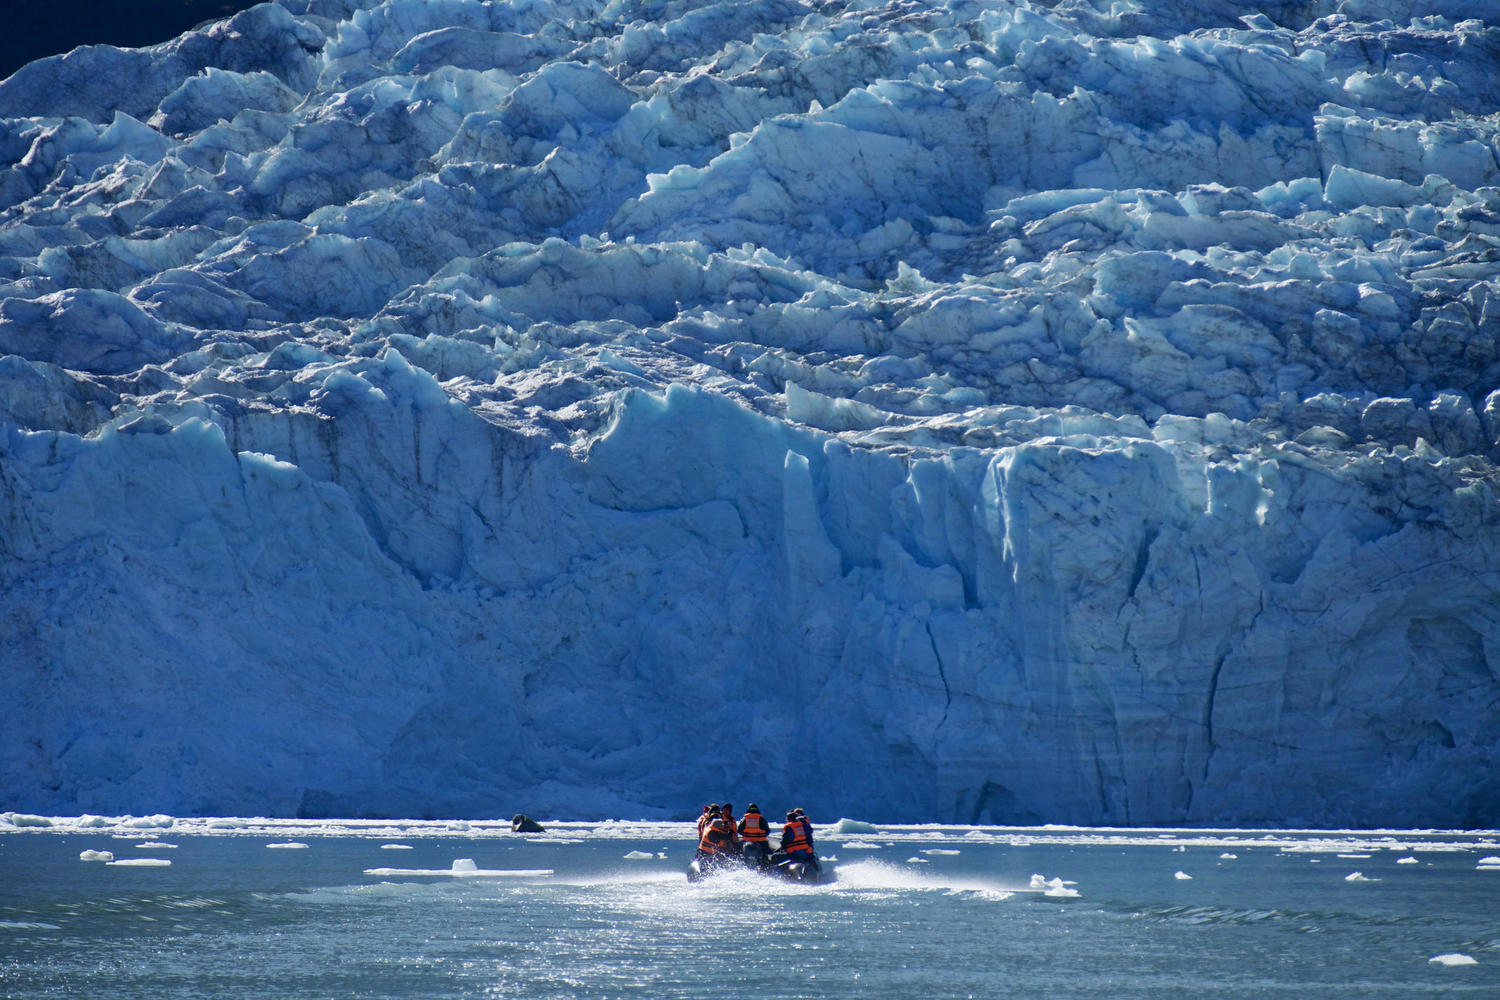 Zodiac approaching the Pia Glacier from the Australis Cruise